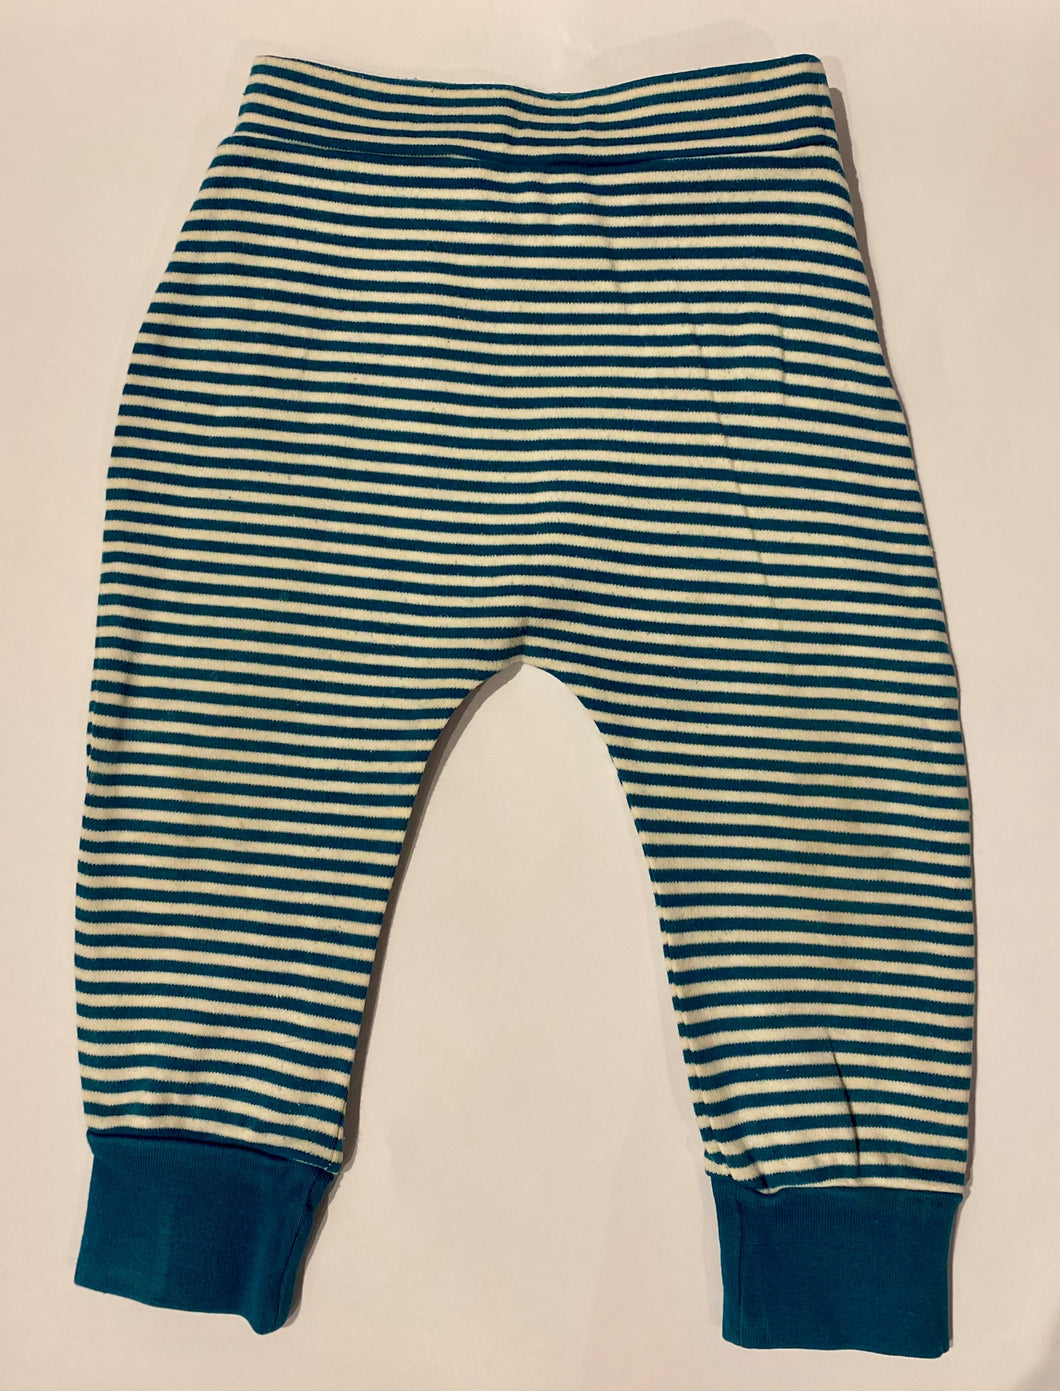 PRELOVED LGR Teal Striped Joggers 18-24months